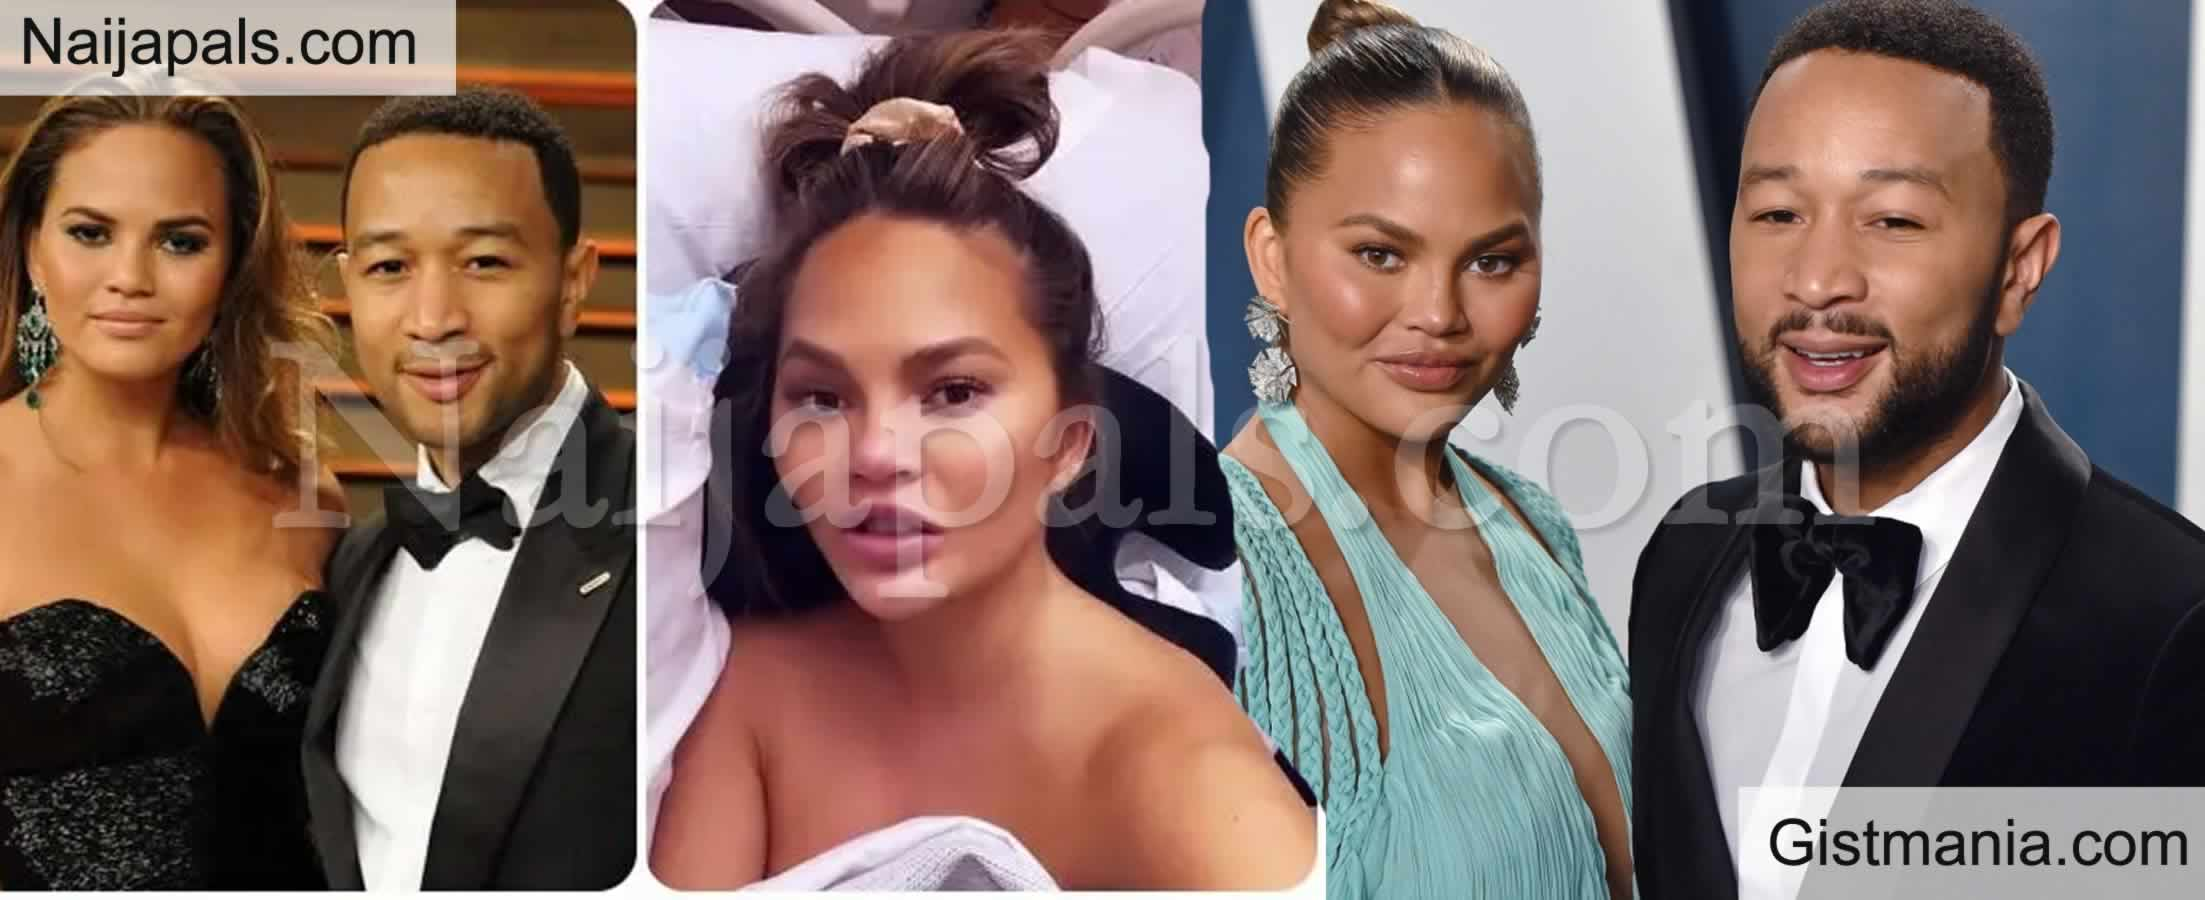 <img alt='.' class='lazyload' data-src='https://img.gistmania.com/emot/shocked.gif' /> <b>Chrissy Teigen, Wife Of John Legend Hospitalised After Suffering Bleeding During Pregnancy</b>